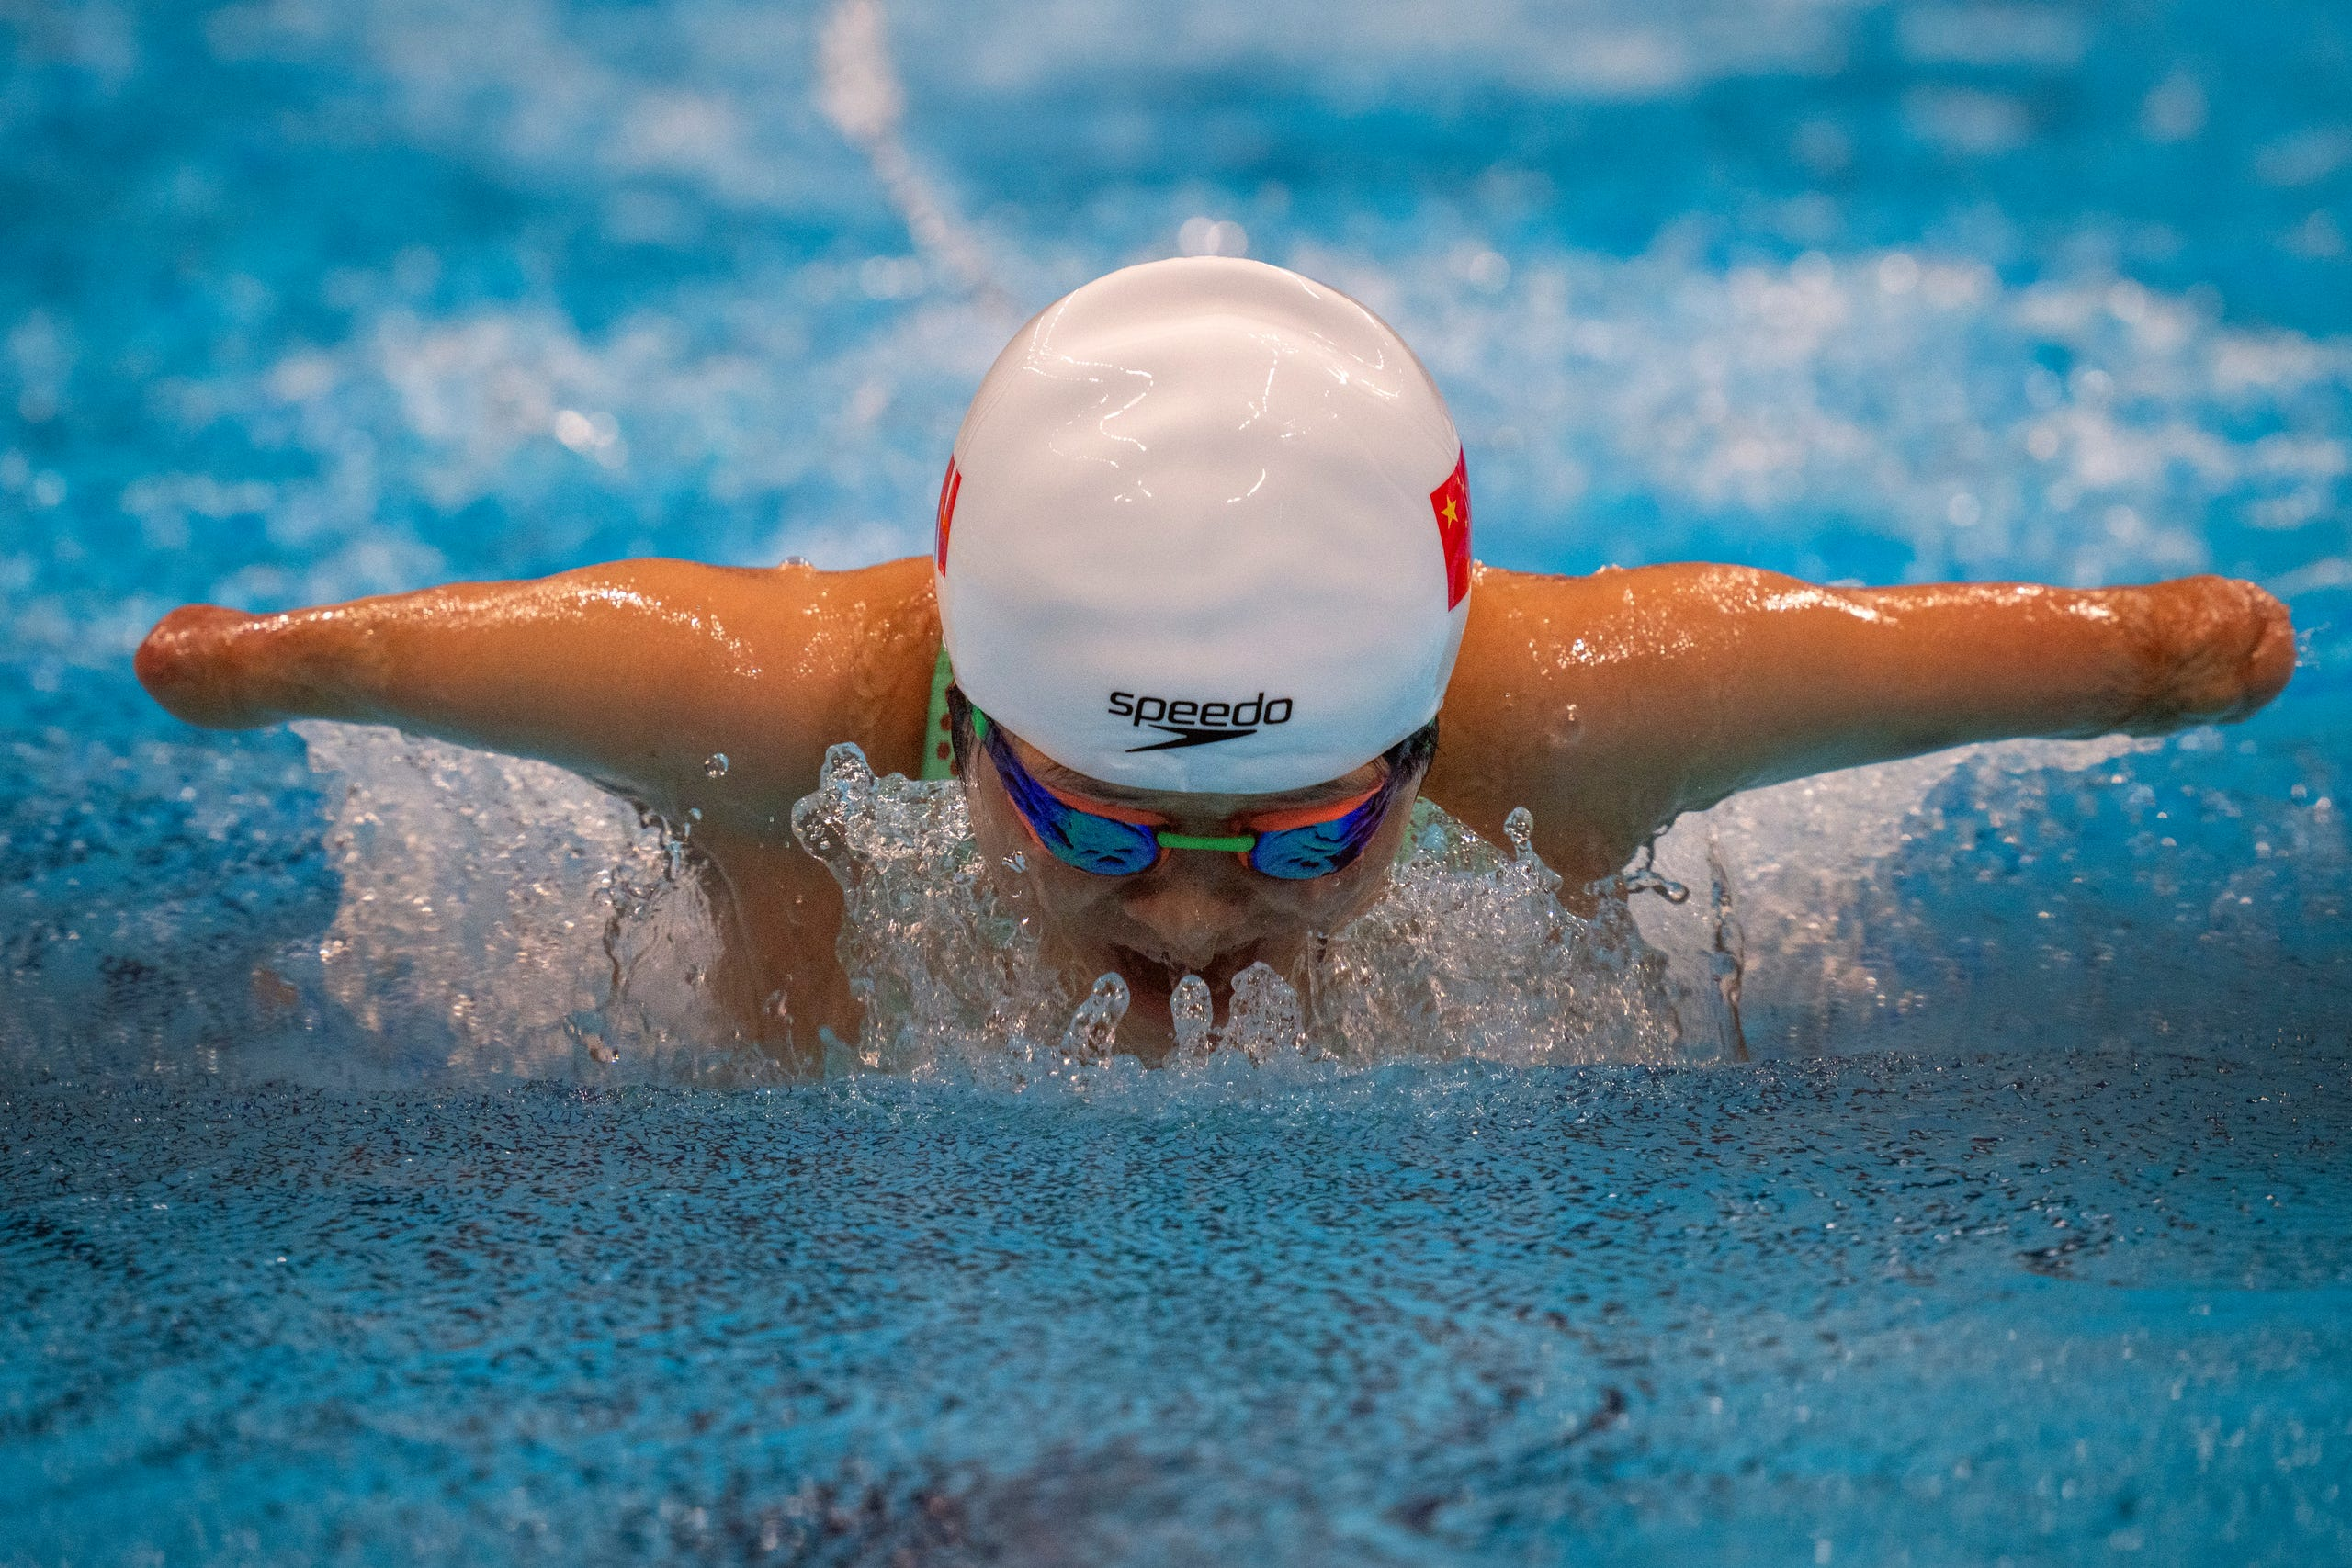 August 26, 2021:  Daomin Liu competes at Women's 200m Individual Medley - SM6 Heat 1 at the Tokyo Aquatics Centre during the Tokyo 2020 Paralympic Games.